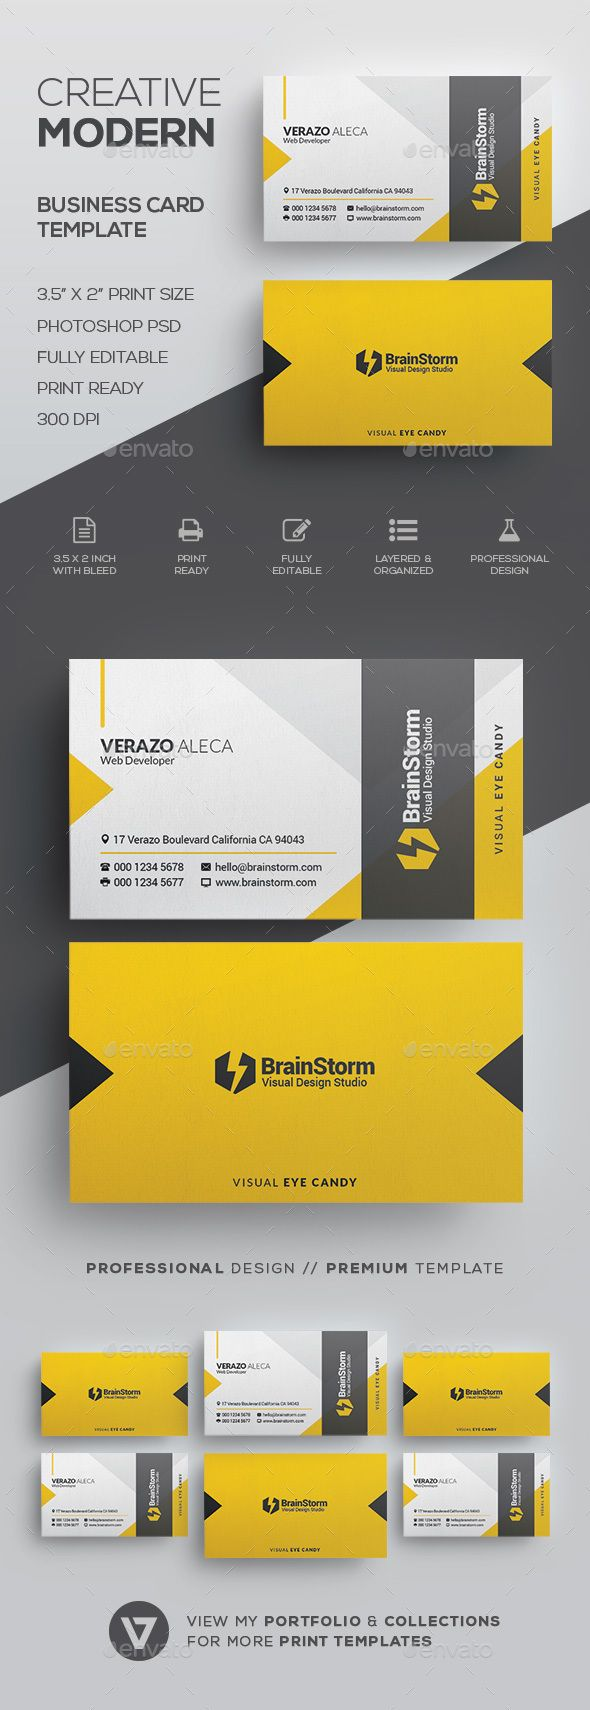 Creative Modern Business Card Template PSD